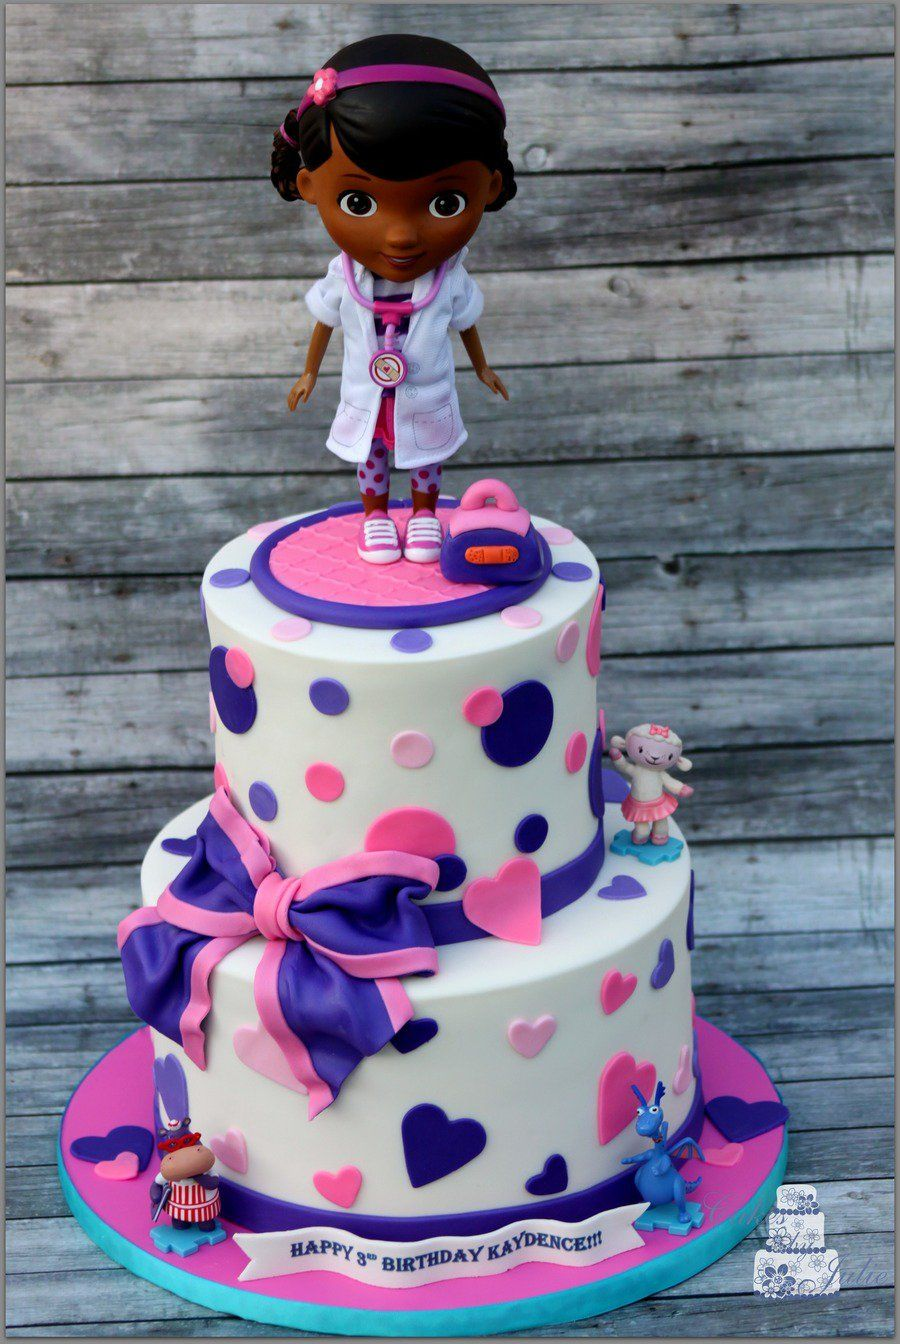 Phenomenal Doc Mcstuffins Birthday Cake With Images Doc Mcstuffins Birthday Cards Printable Nowaargucafe Filternl